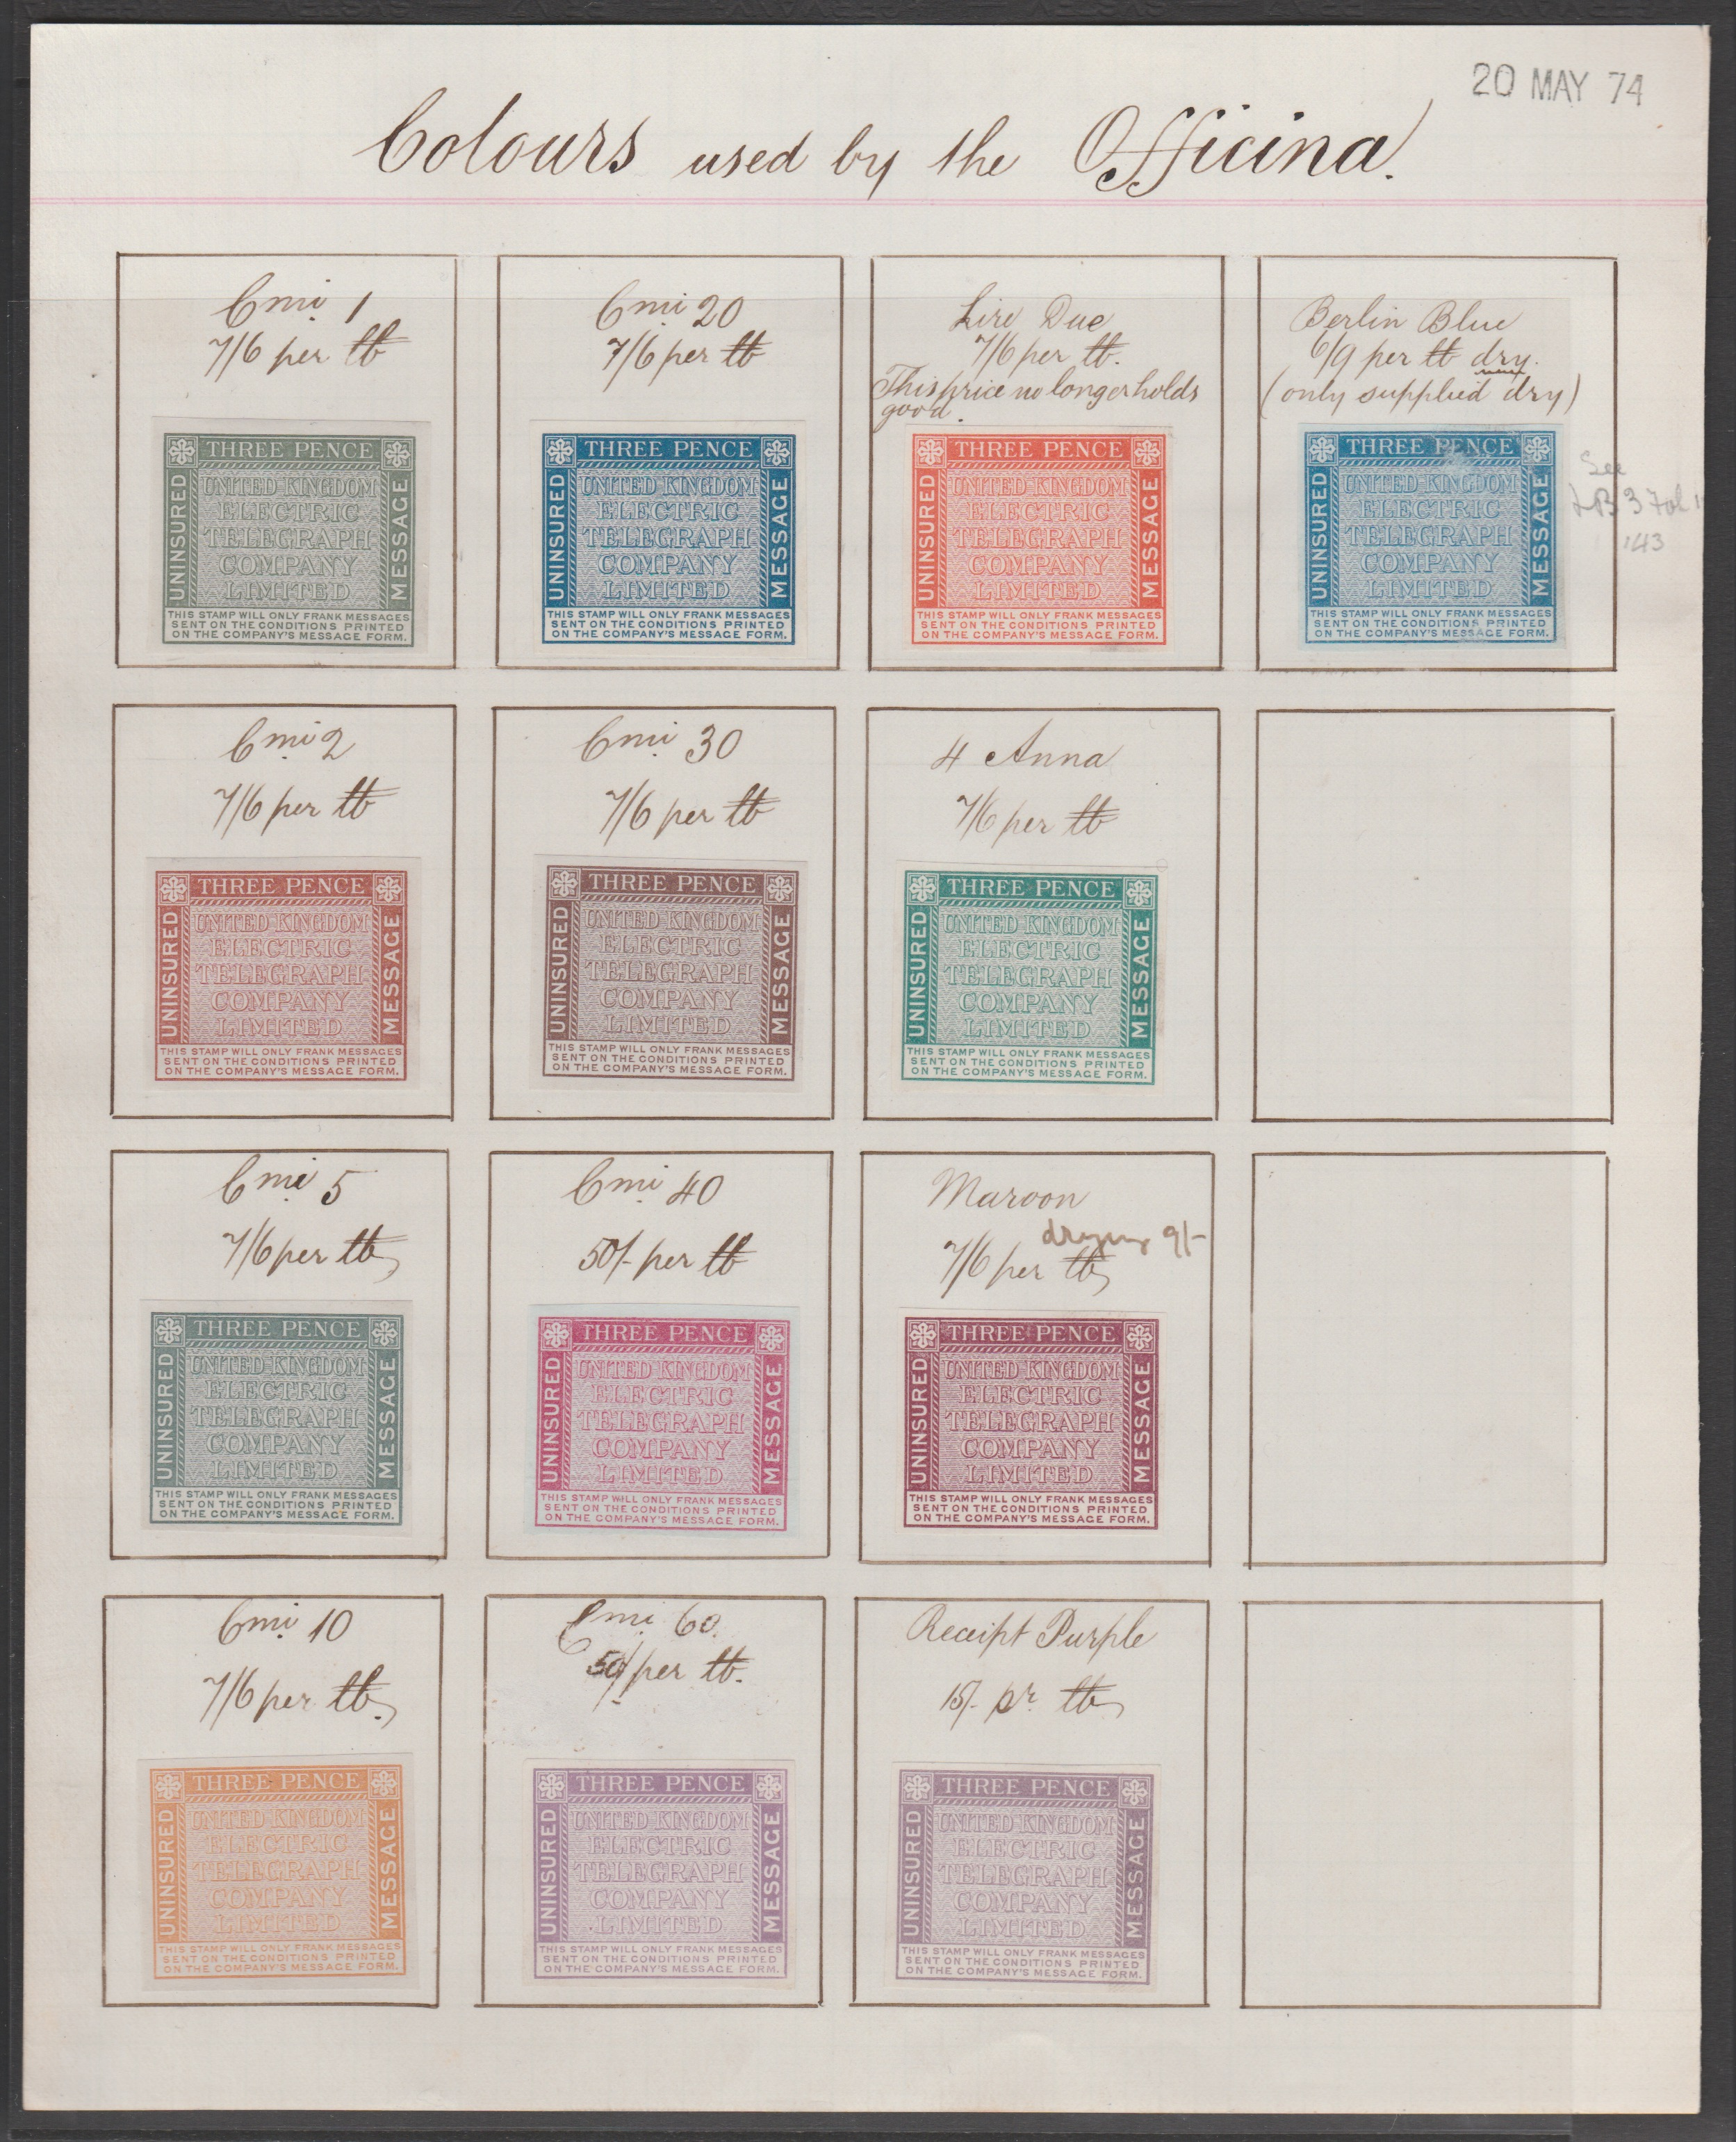 Italy / G.B. - Telegraph Stamps 1874 (May 20)